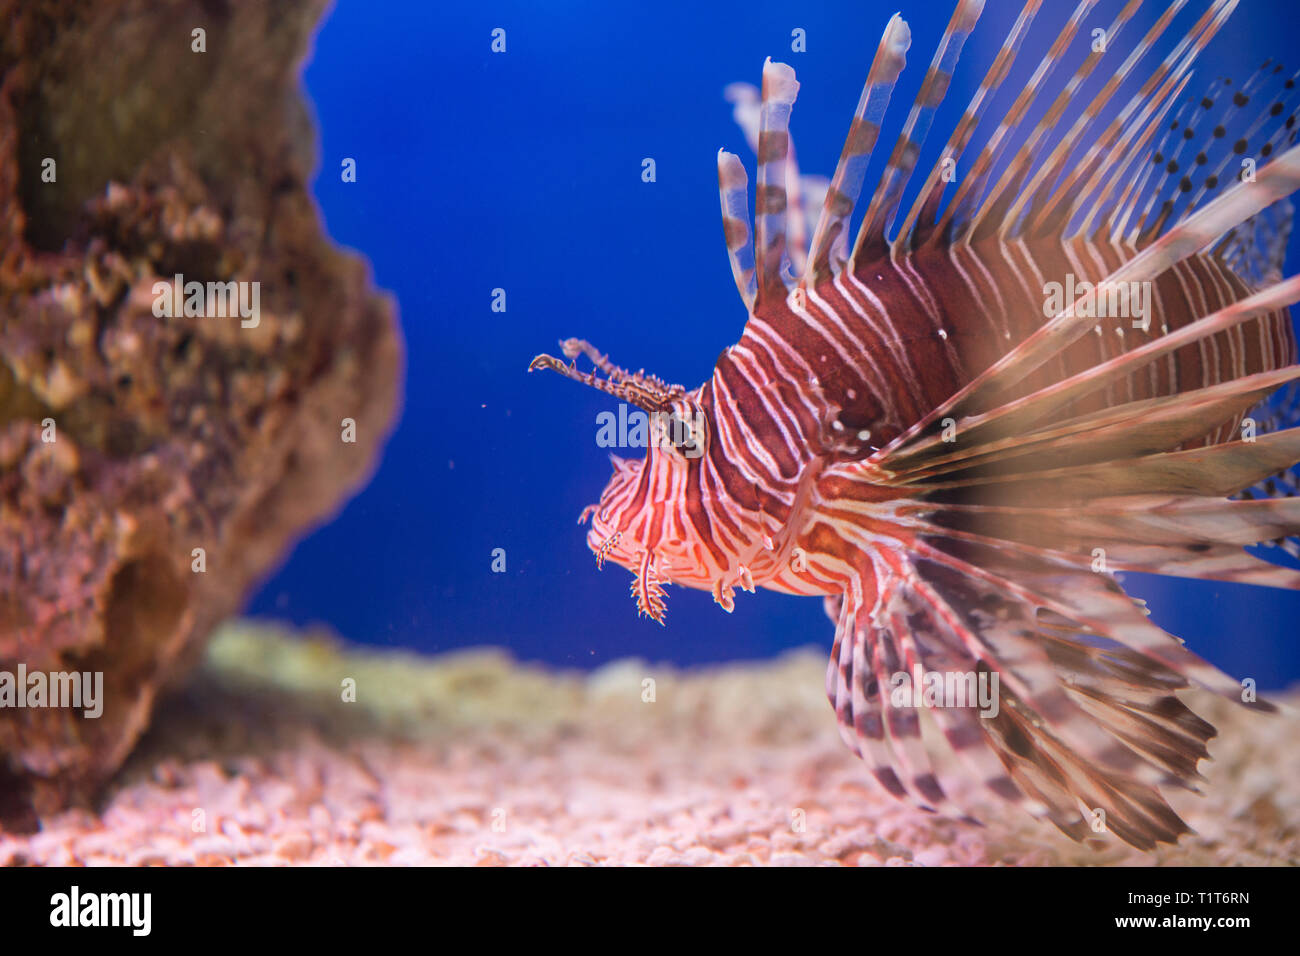 Zebra Fish High Resolution Stock Photography And Images Alamy